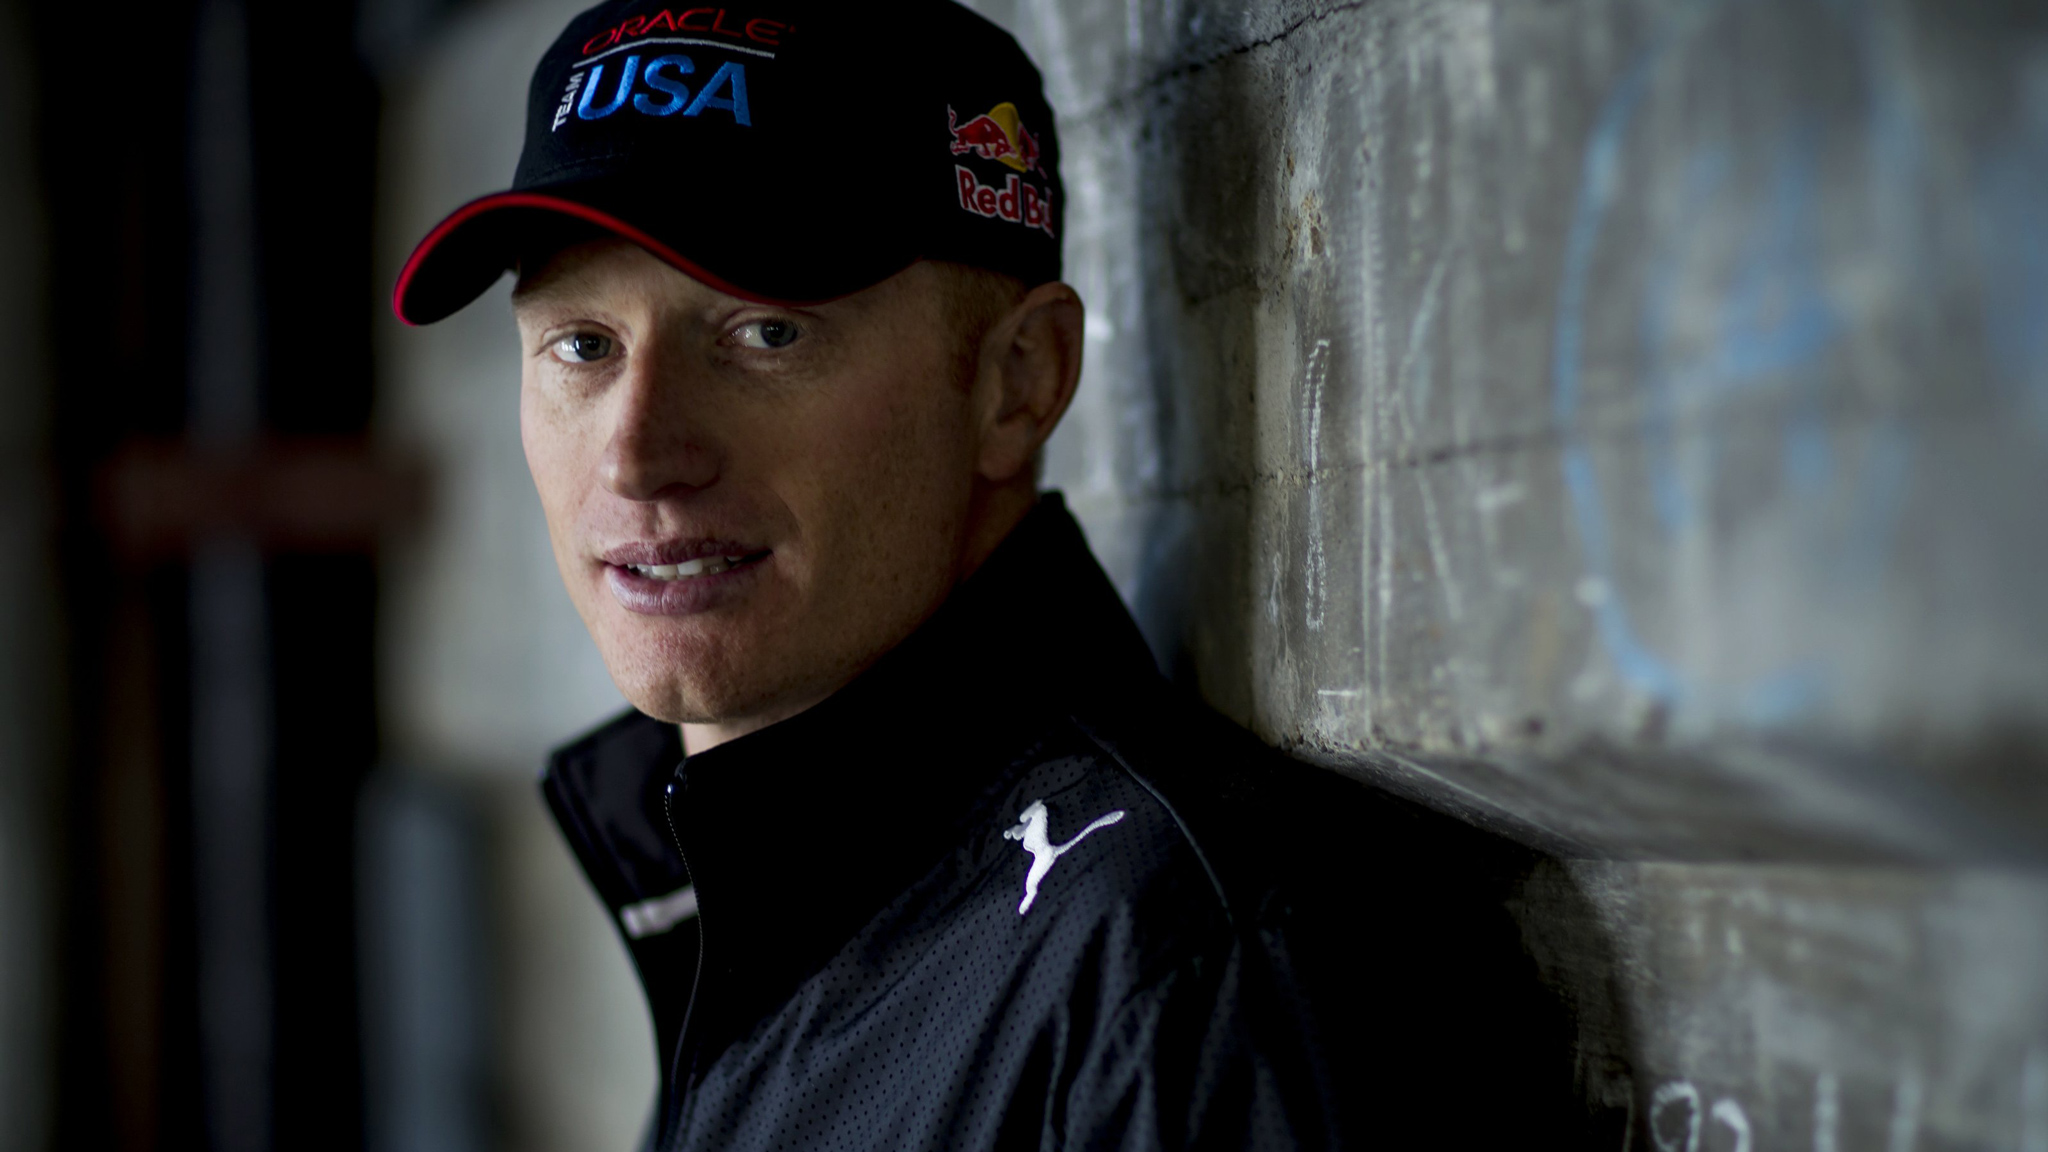 In 2010, Jimmy Spithill became the youngest skipper ever to win an America's Cup race. Now 34, he is leading the charge to make sailing exciting to a new generation.